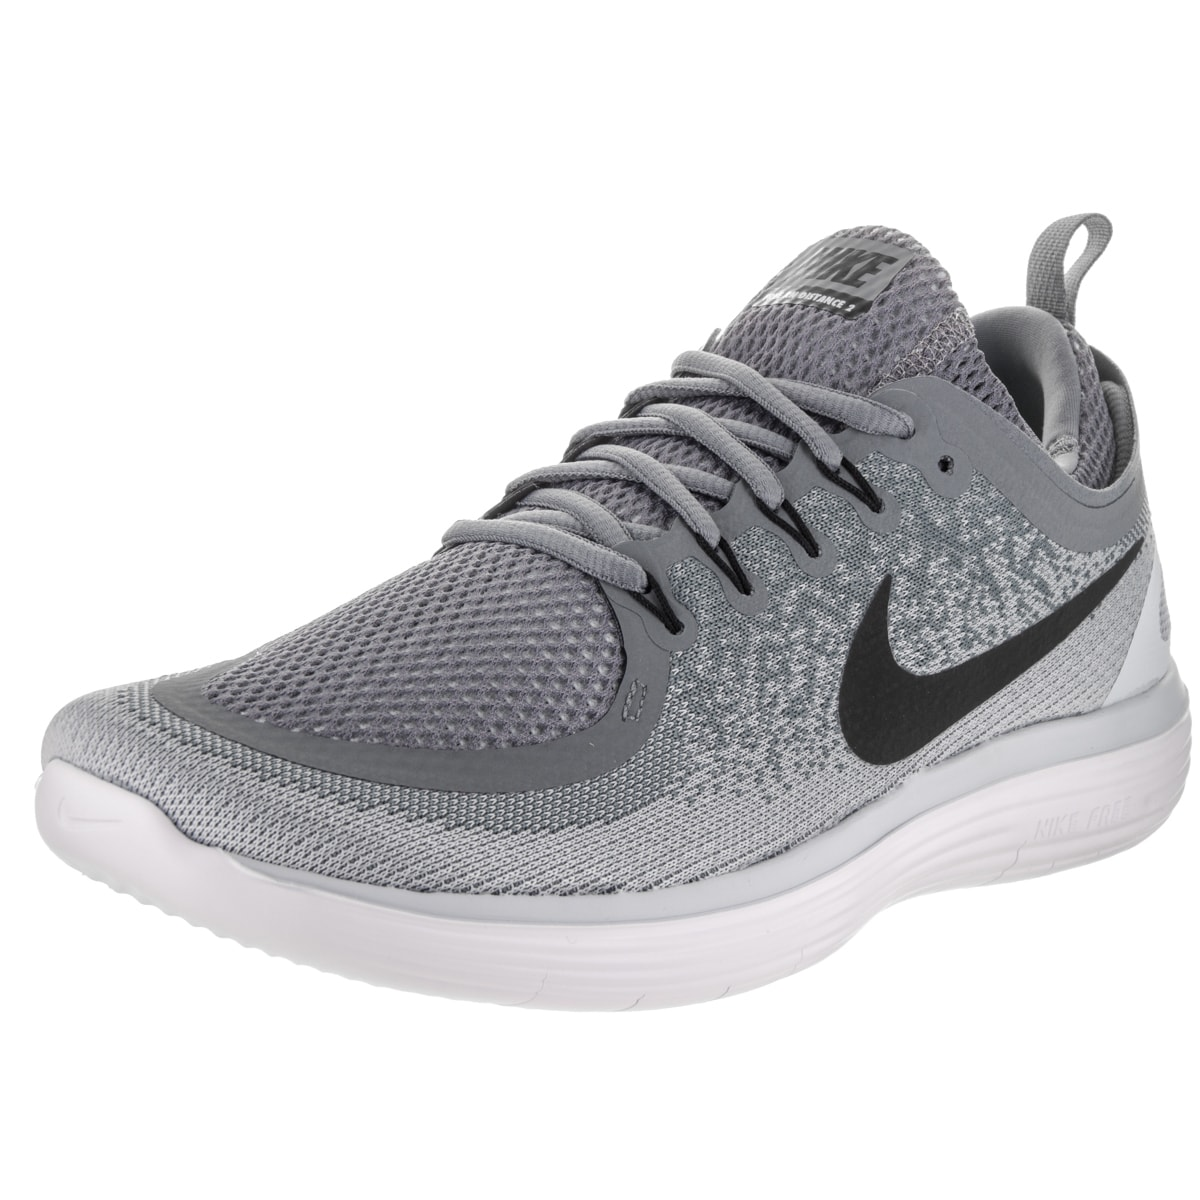 Shop Nike Men S Free Rn Distance 2 Running Shoes Overstock 14083987